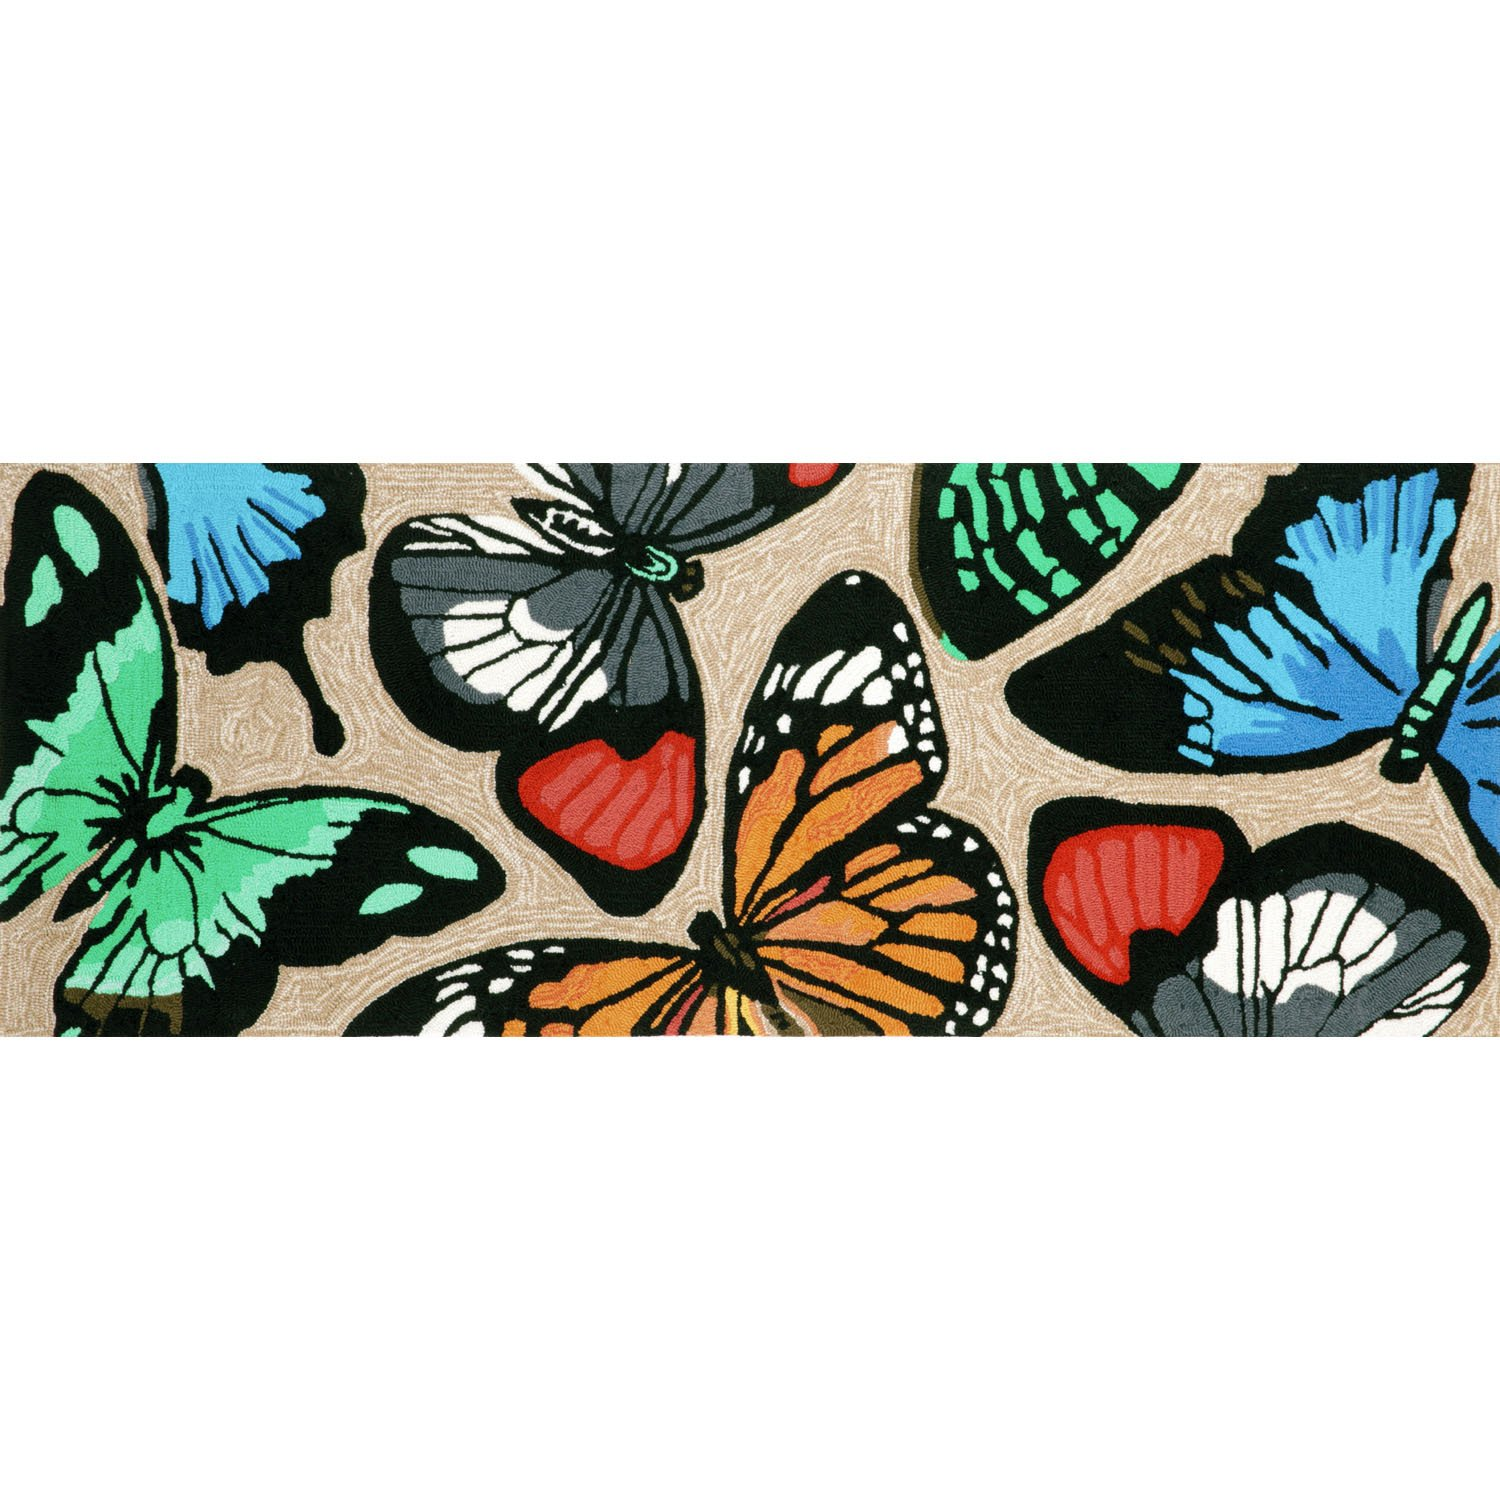 Liora Manne FT1R6A78944 Whimsy Colorful Flight Rug, Indoor/Outdoor, 27'' x 72'', Multicolor